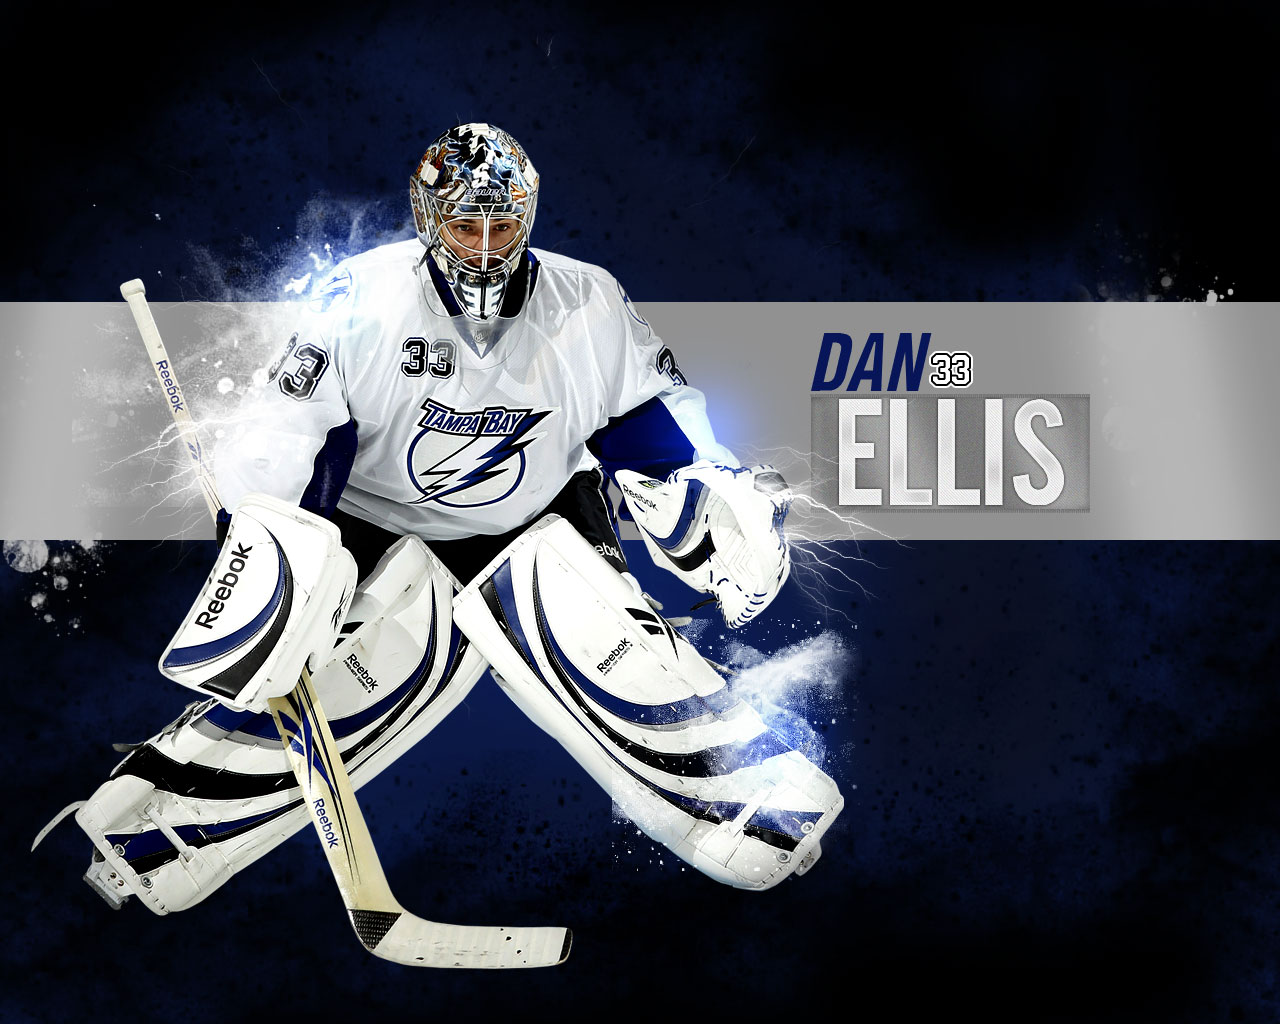 NHL Wallpapers   Dan Ellis Tampa Bay Lightning wallpaper 1280x1024